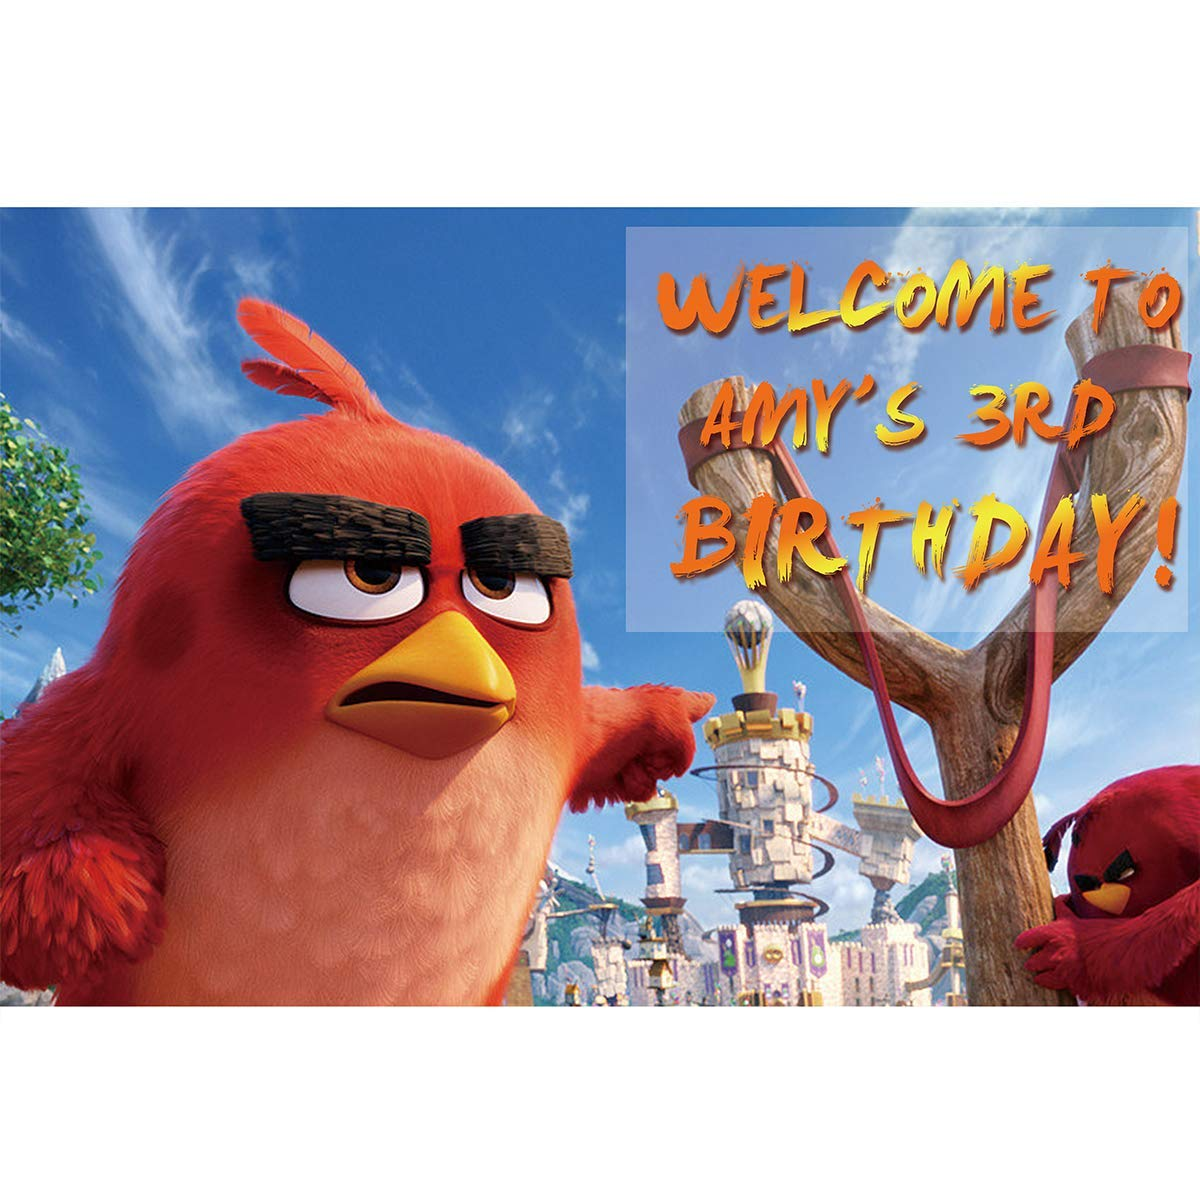 Num553 Backdrop Customized for Birthday Decor HoRmi Replacement for Angry Birds Party Decoration Supplies